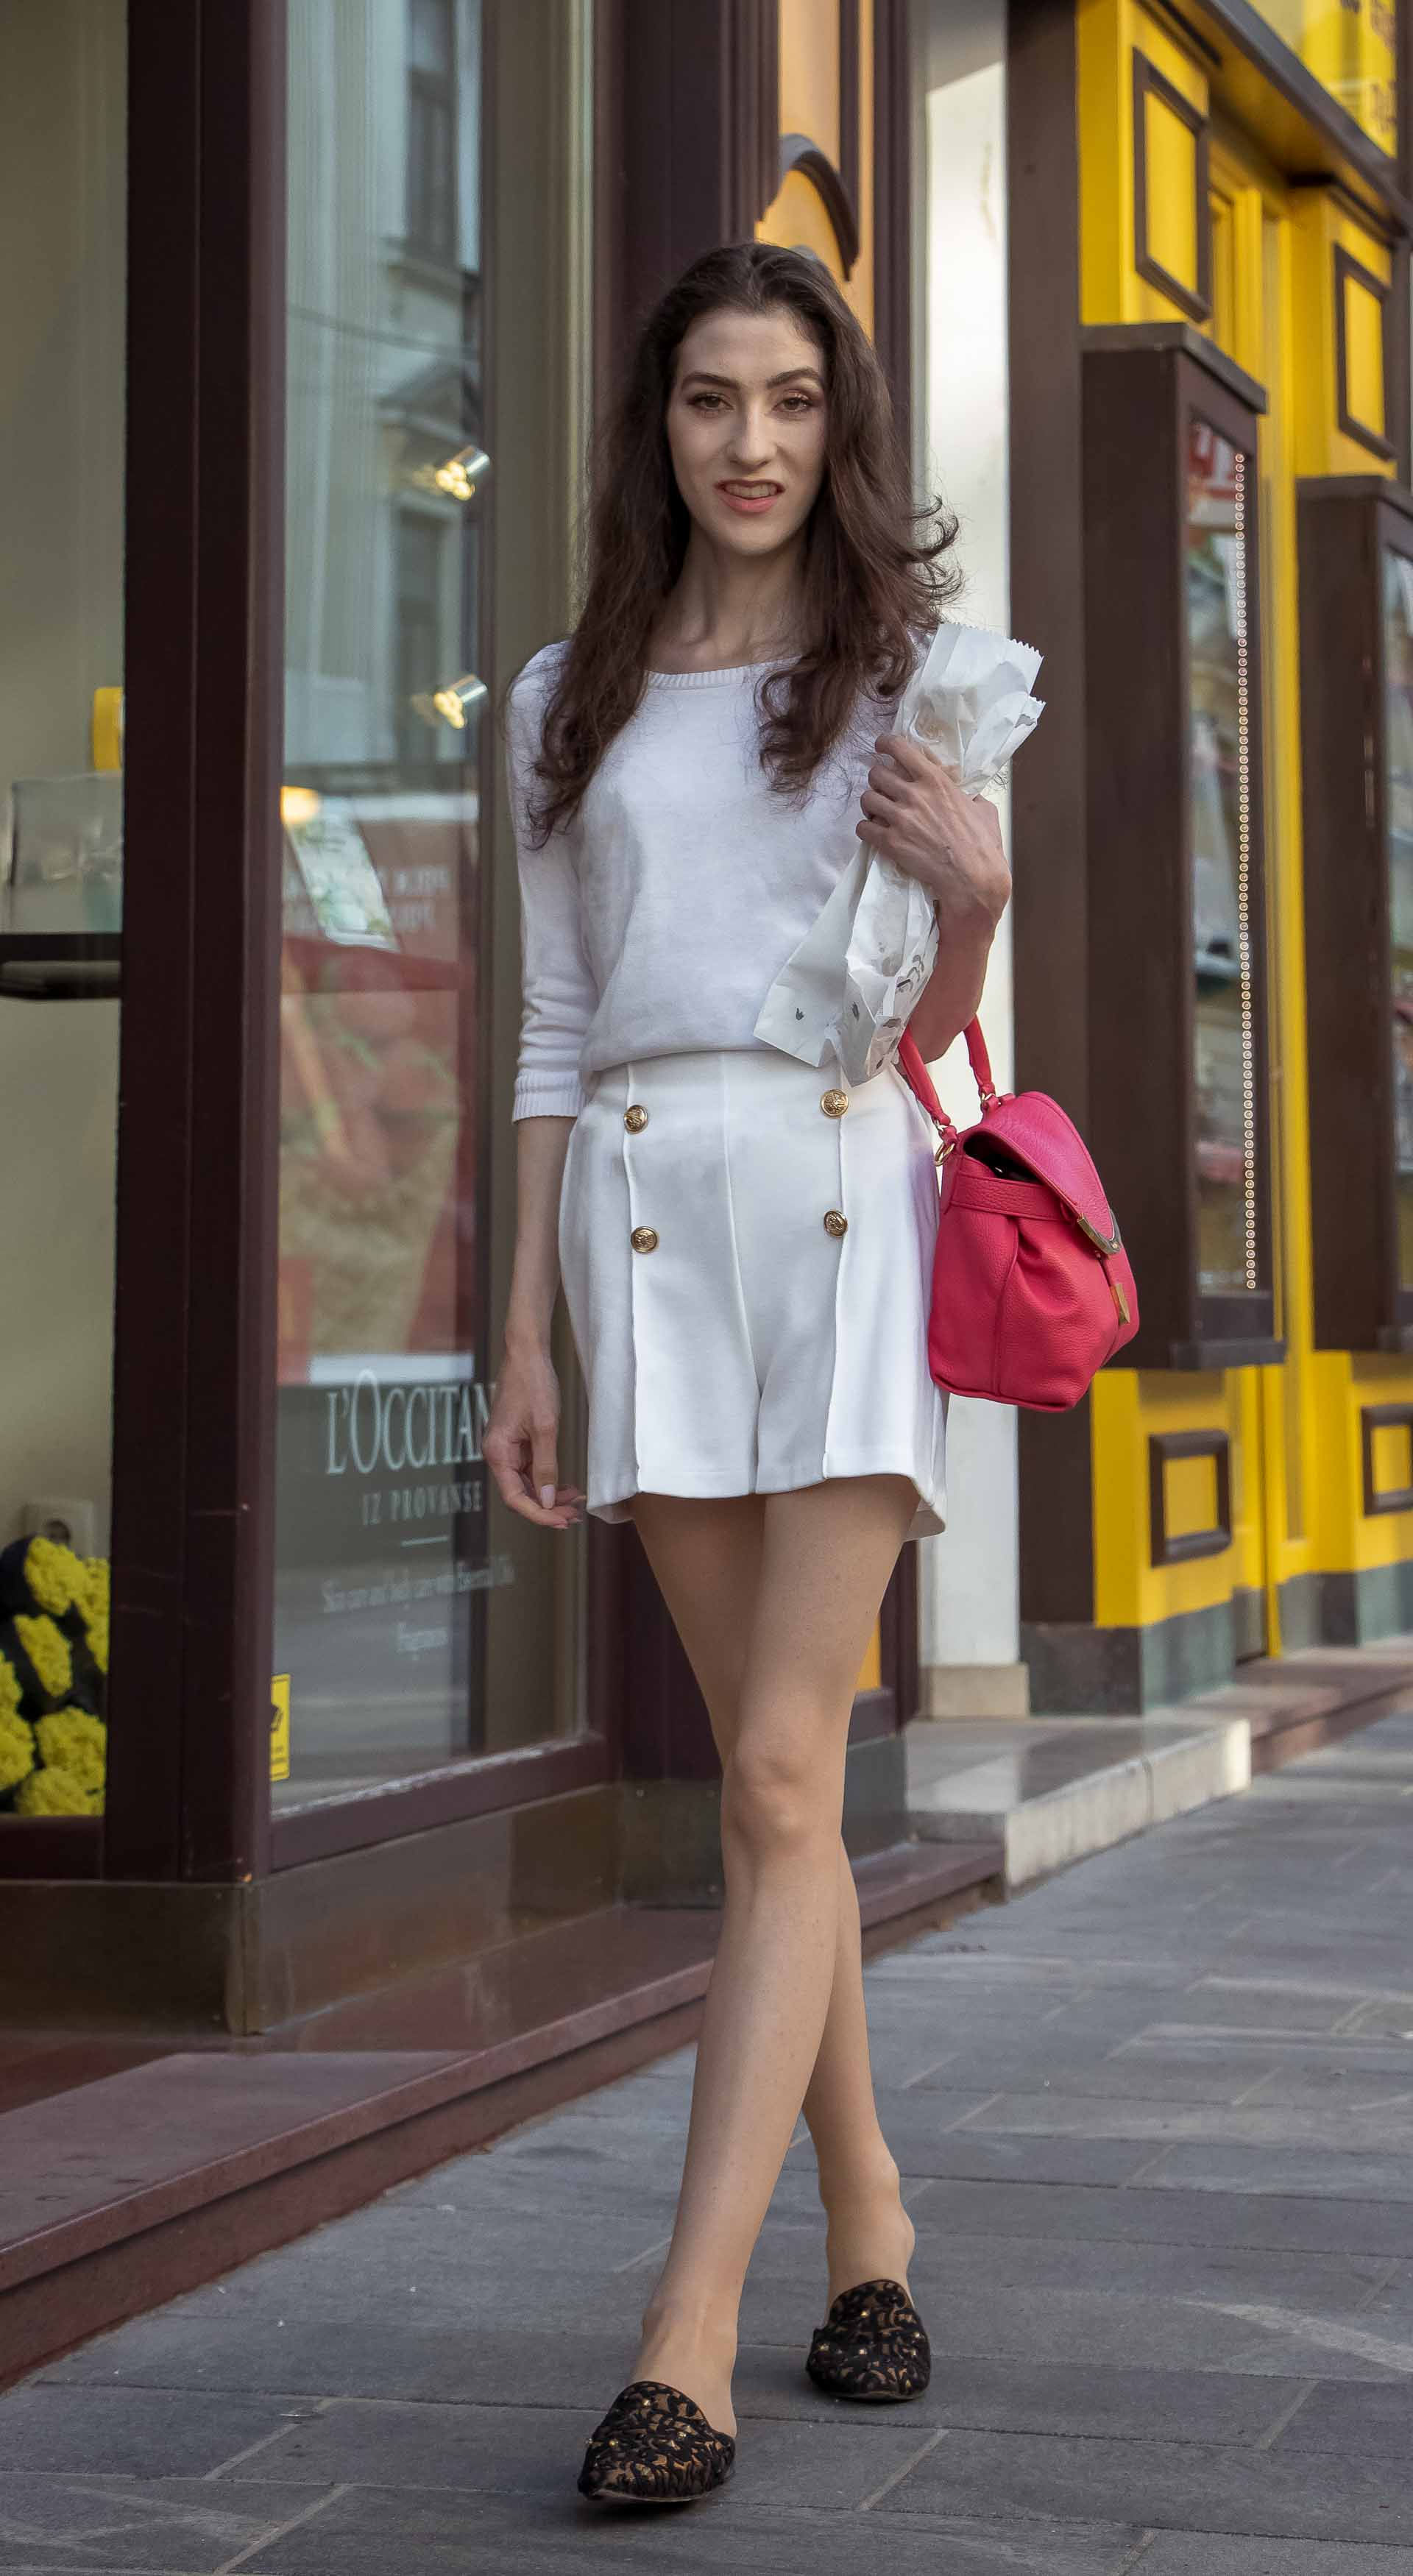 Slovenska modna blogerka Veronika Lipar of Brunette from Wall wearing all in white outfit, a white sweater, white tailored shorts, black flat slipper mules, pink top handle bag, a paper bag while walking down the street in Ljubljana